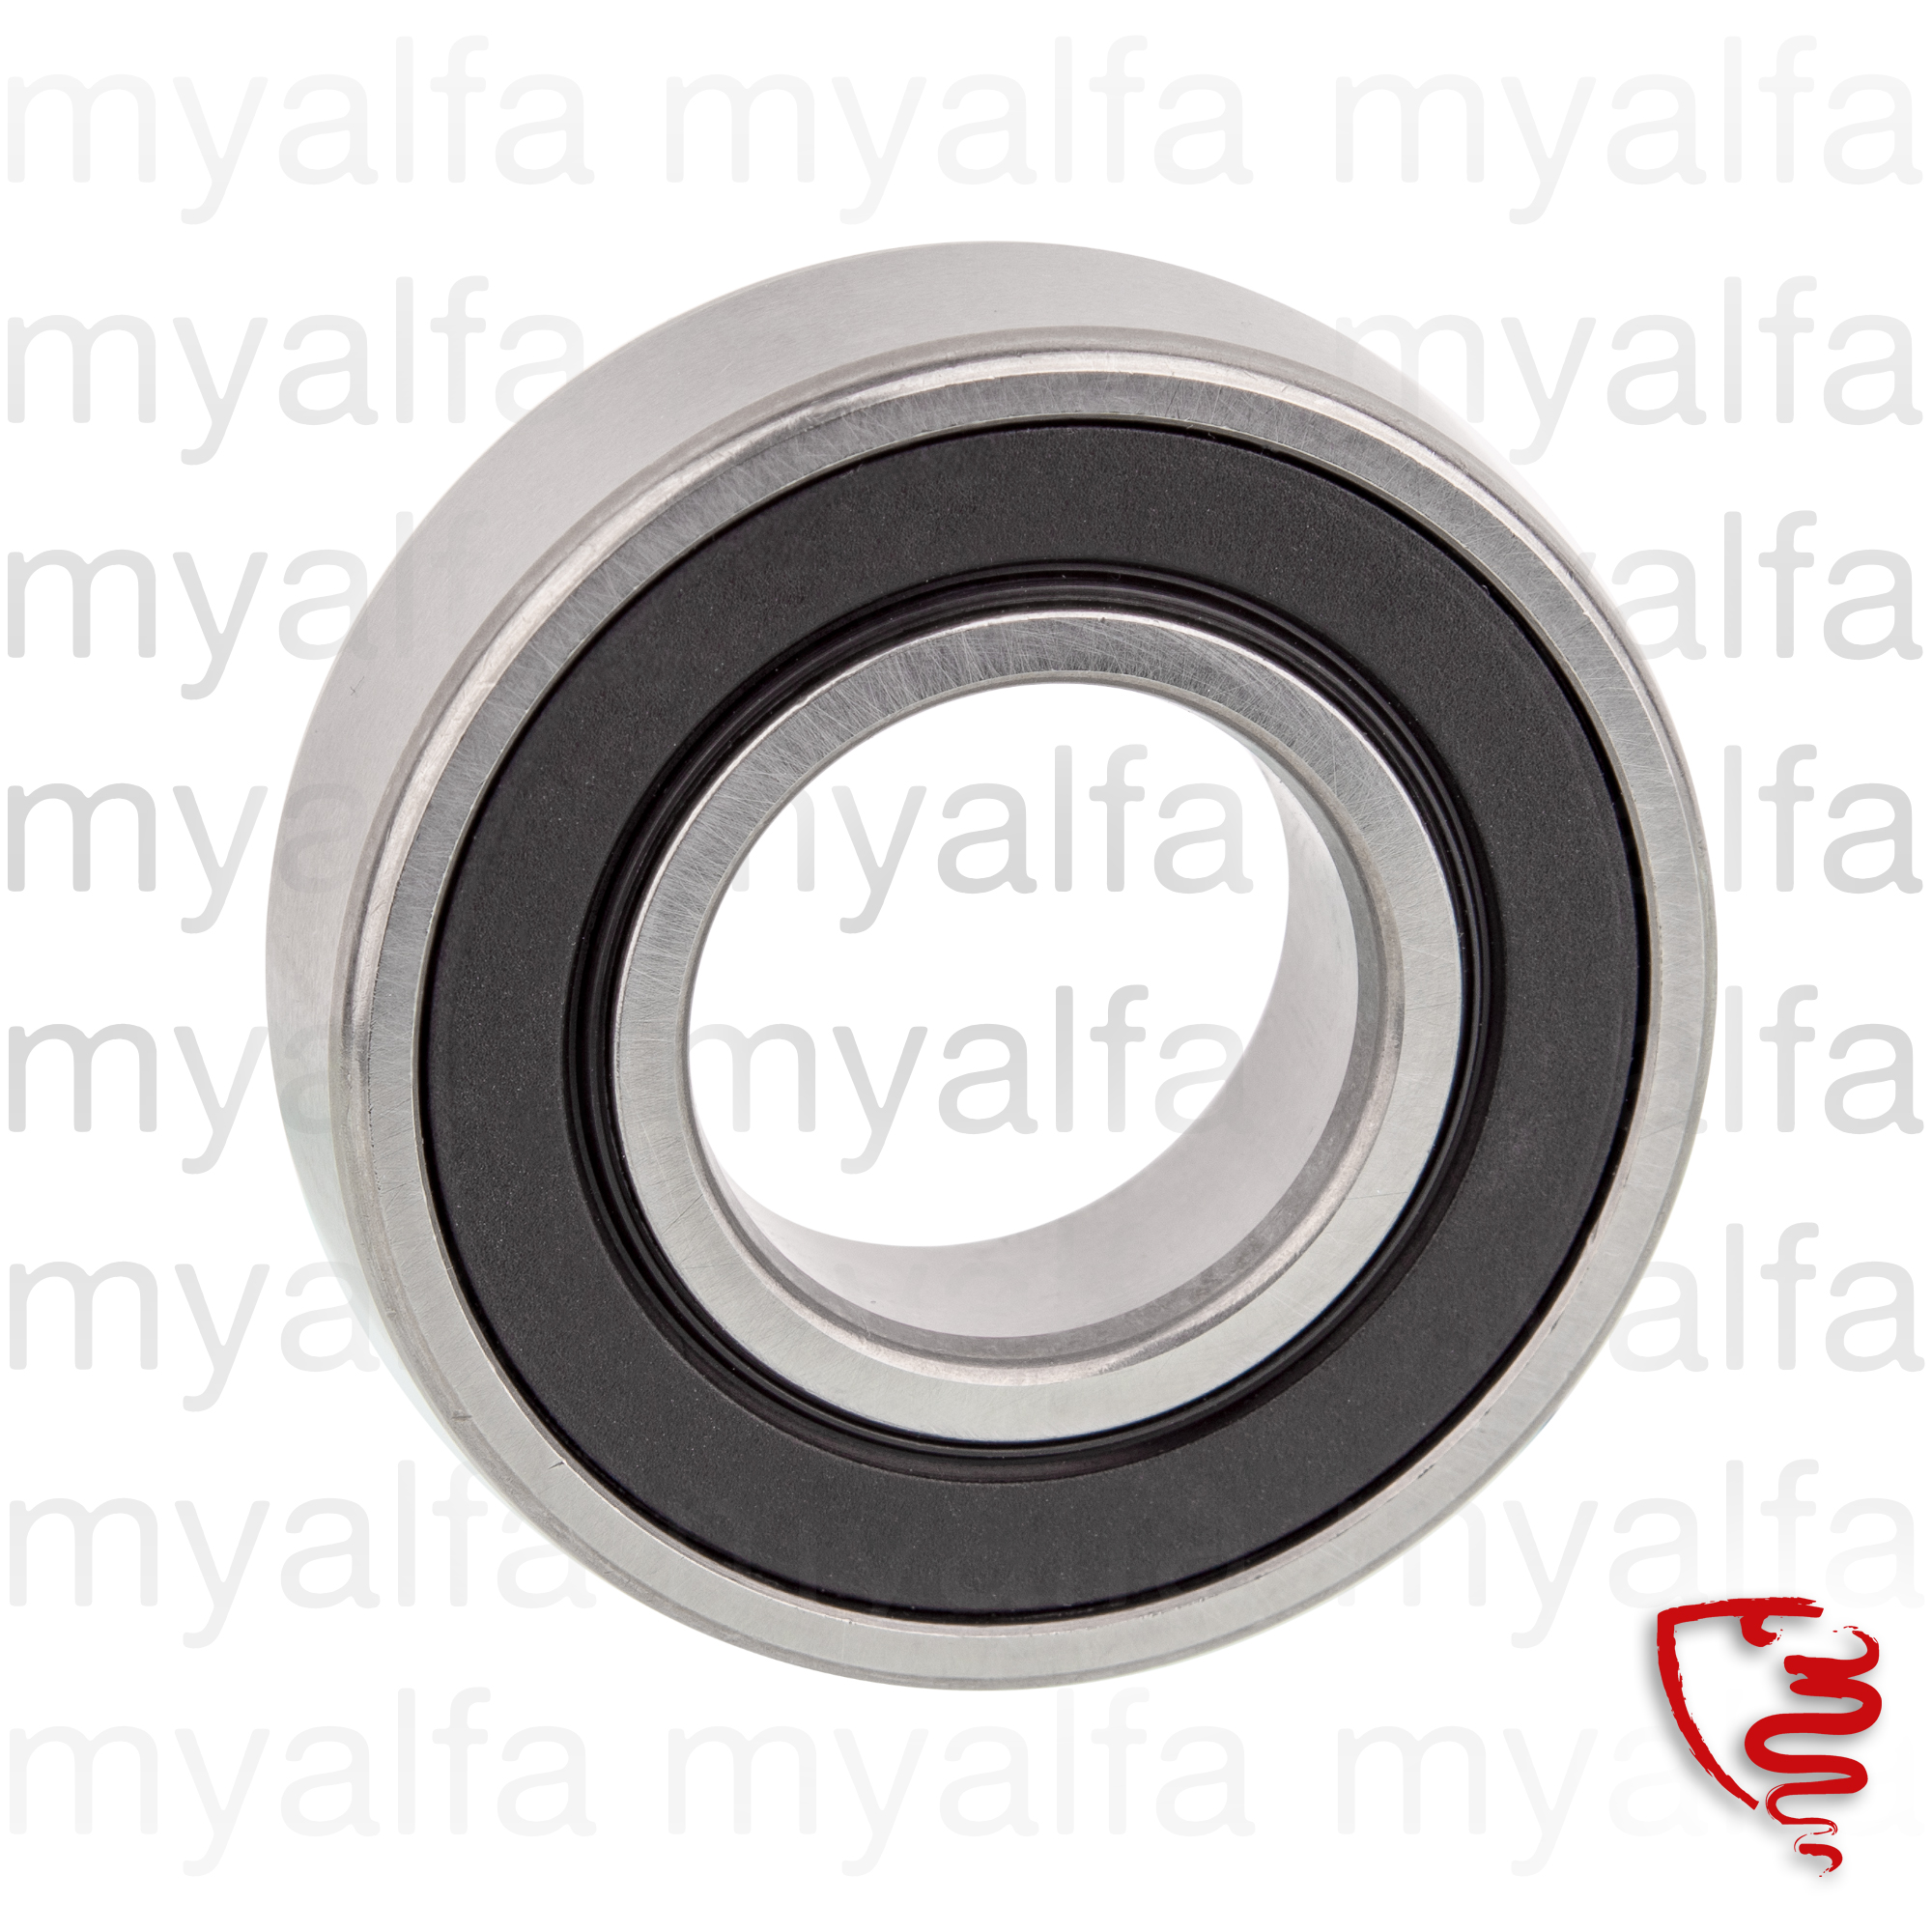 Bearing p / support shaft transmission GTV4 for 116/119, Drive train, Mounting Parts